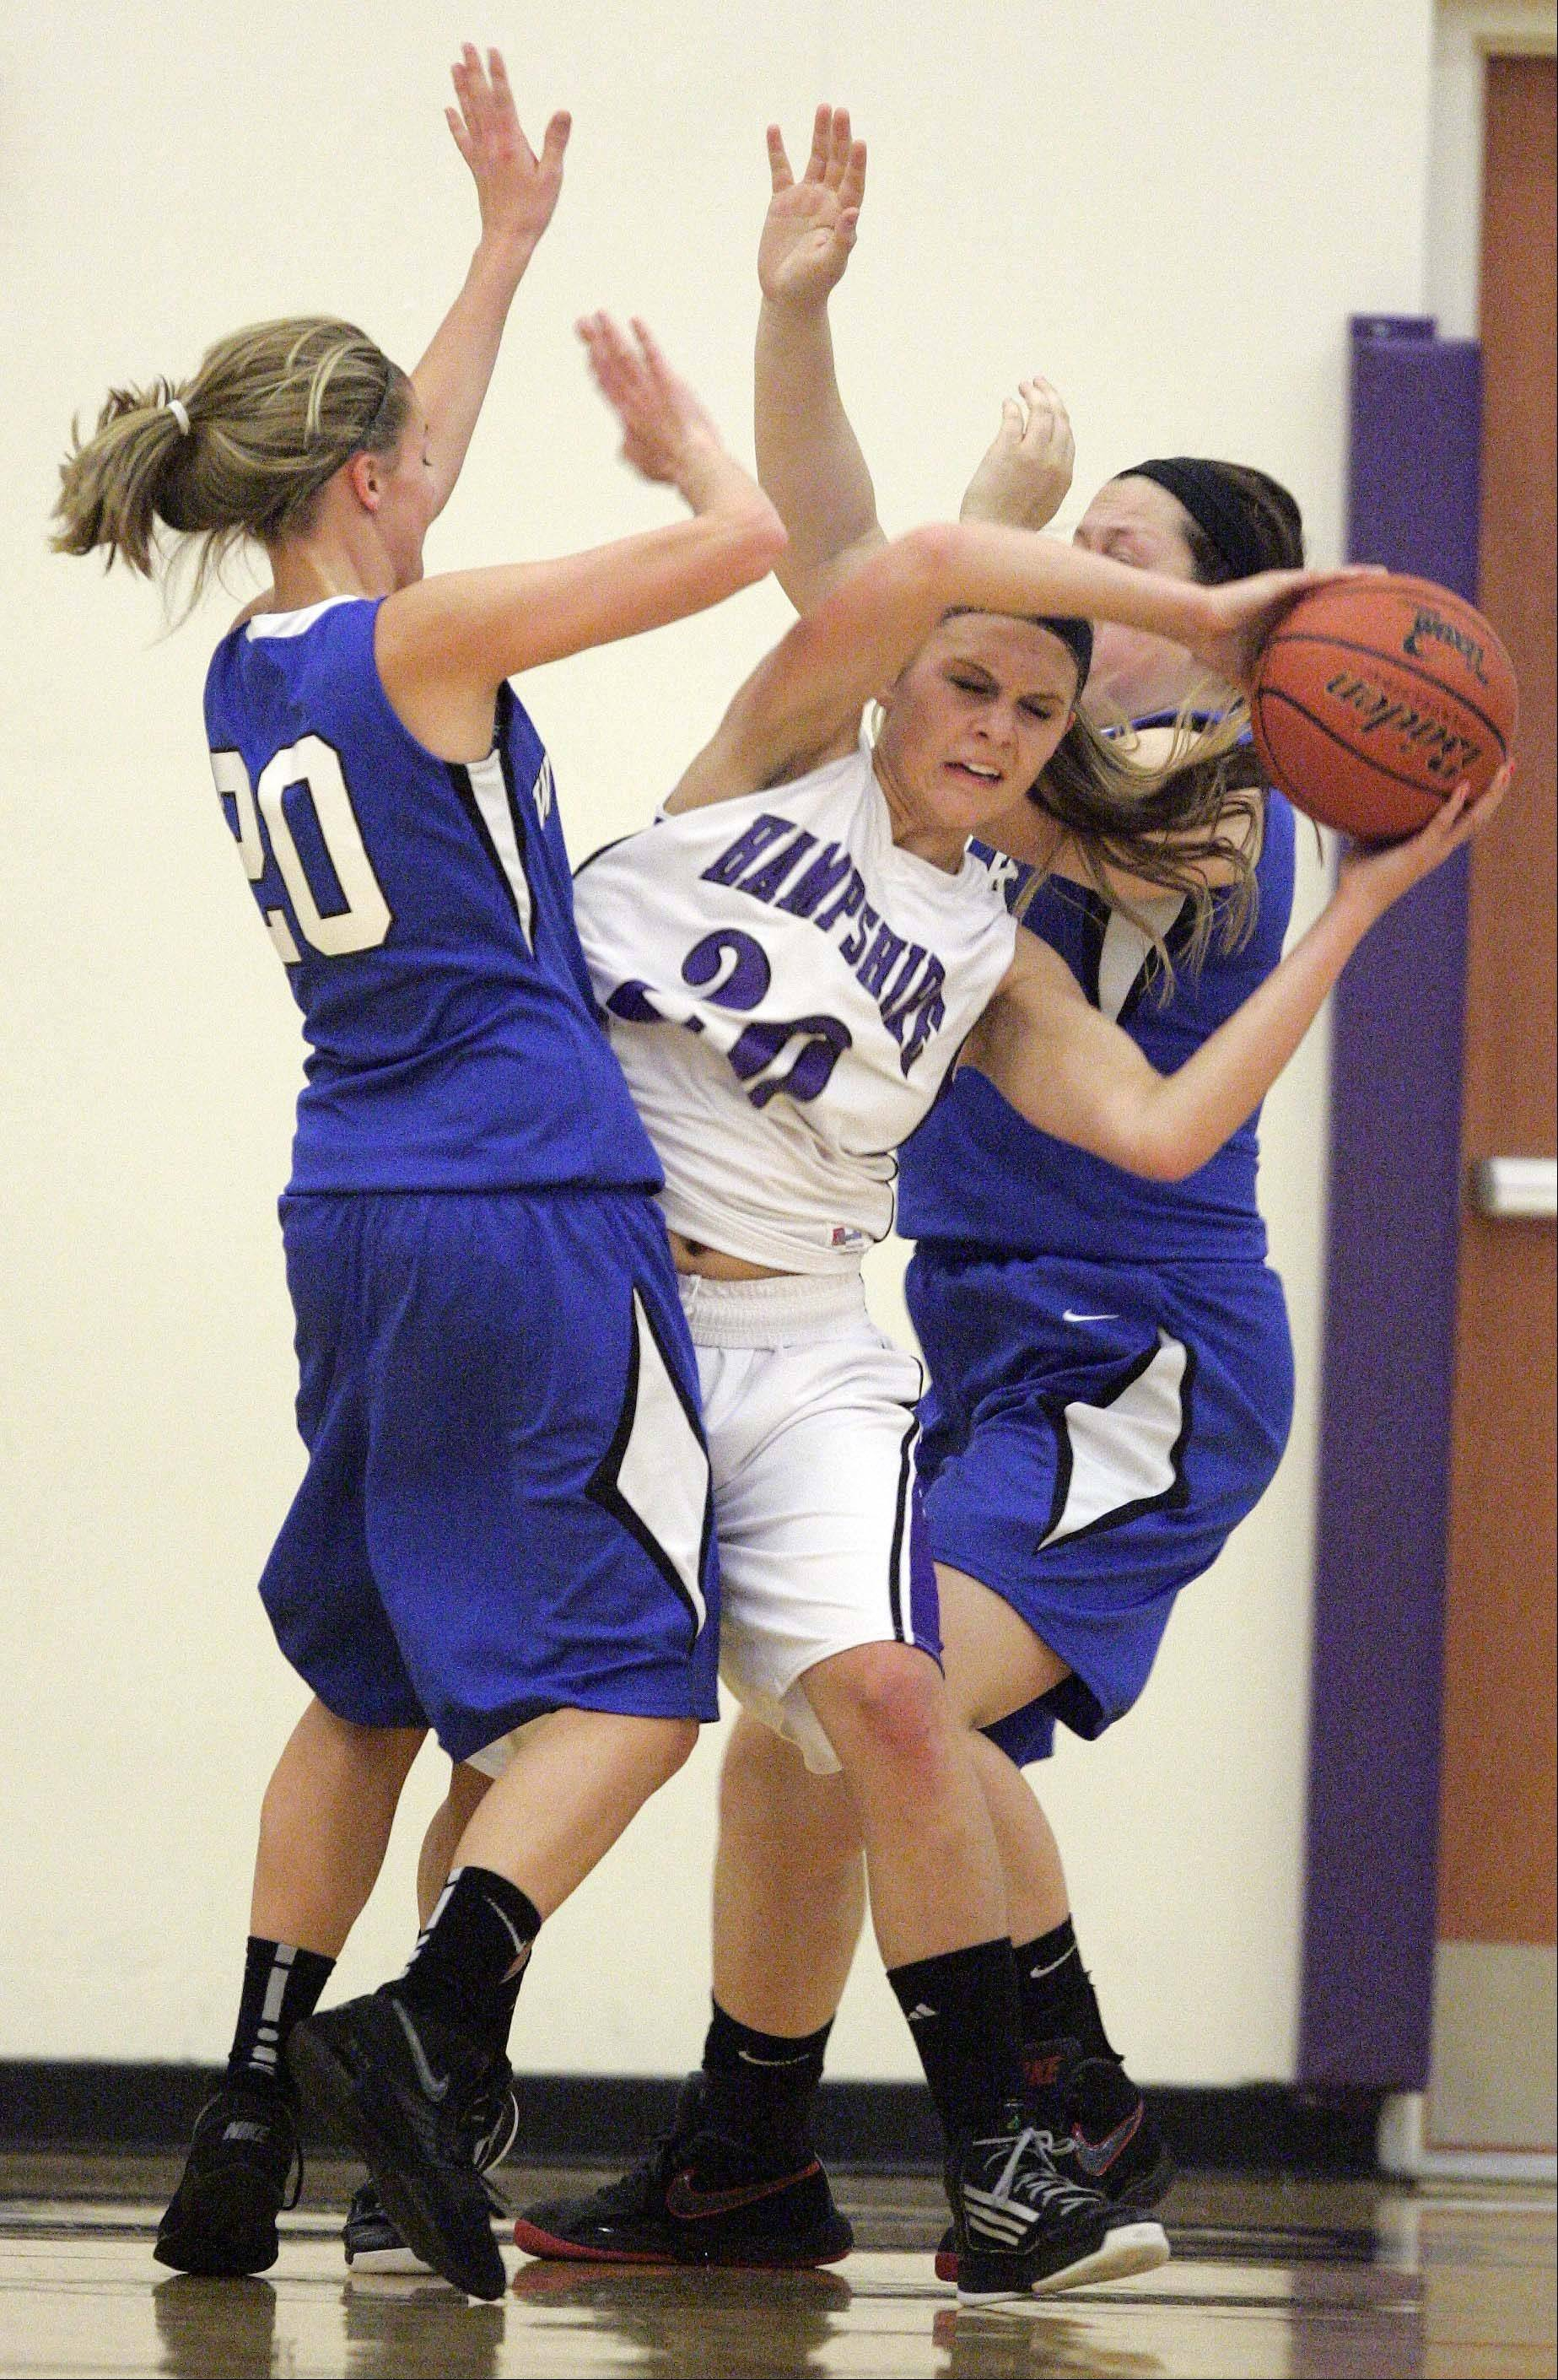 Hampshire's Lizzy Panzica, 20, slips between Woodstock's Sydney Haulotte, 20, and AMber Roberts, 44, during Saturday's game.